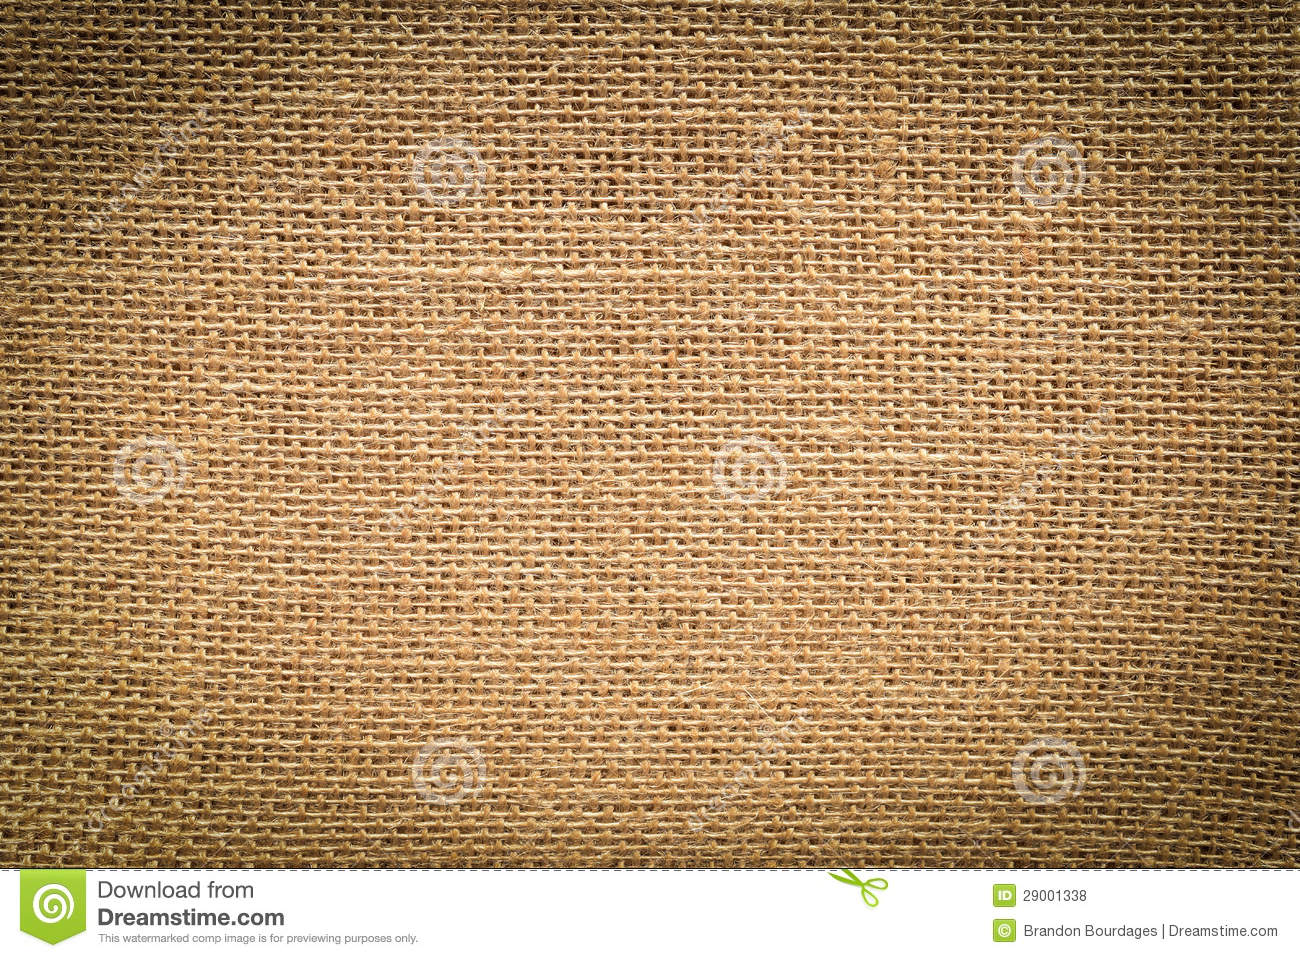 Burlap Texture Background Royalty Free Stock Photos   Image  29001338